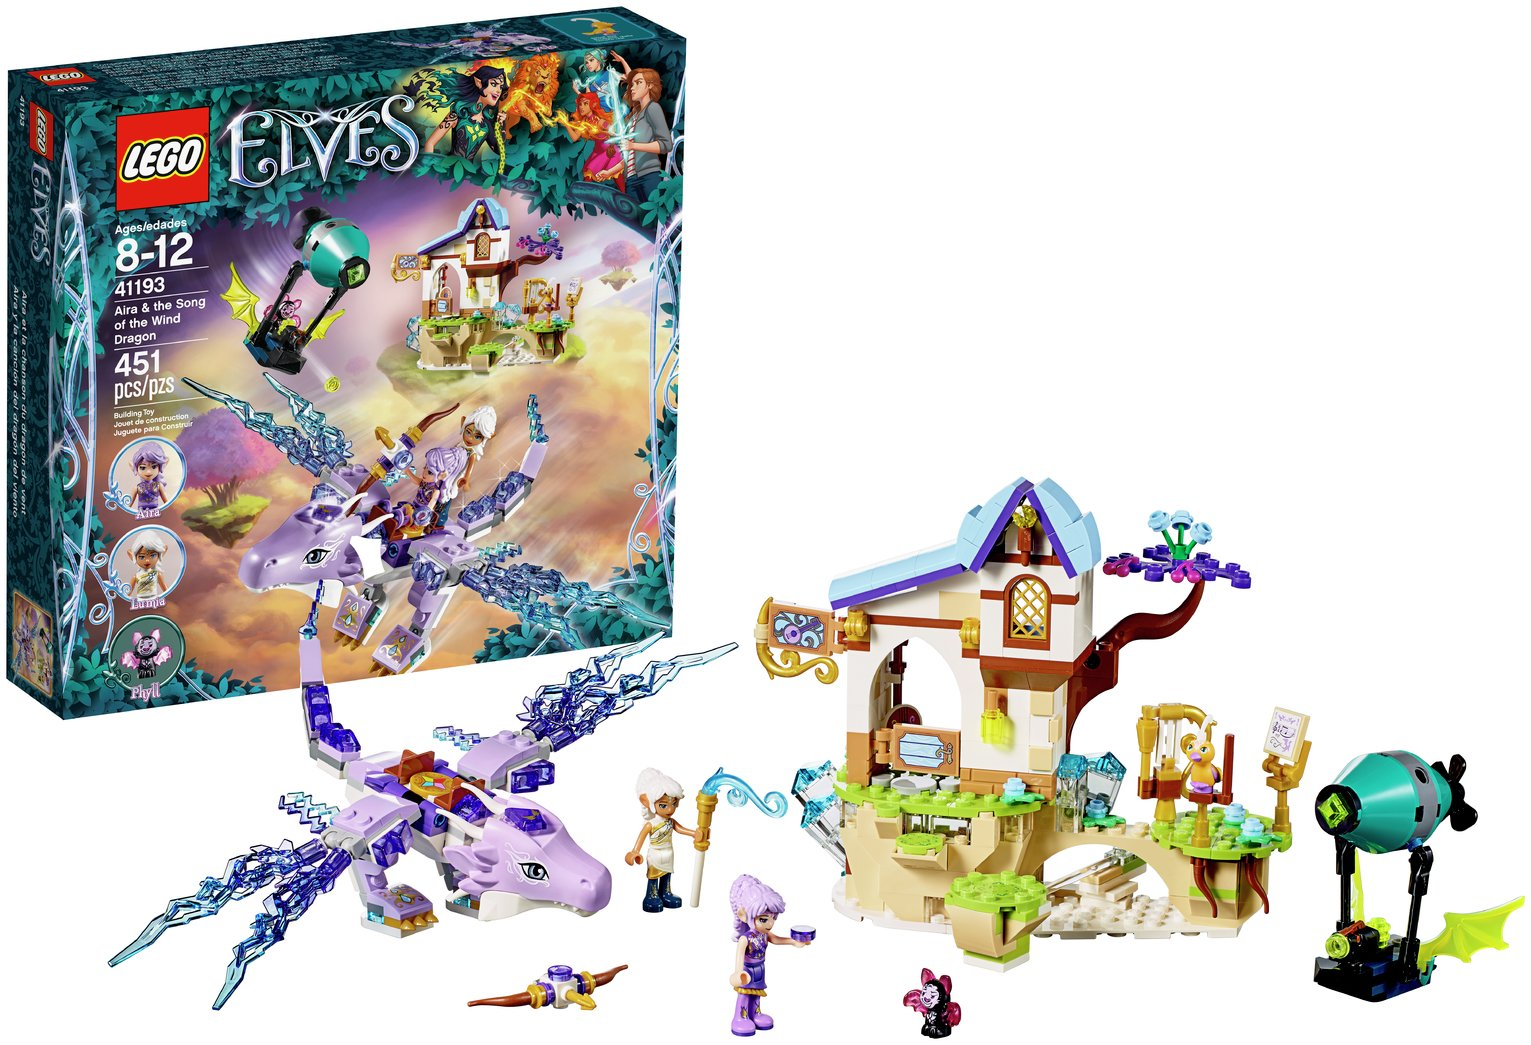 Buy LEGO Elves Aira Song of the Wind Dragon - 41193 | LEGO | Argos